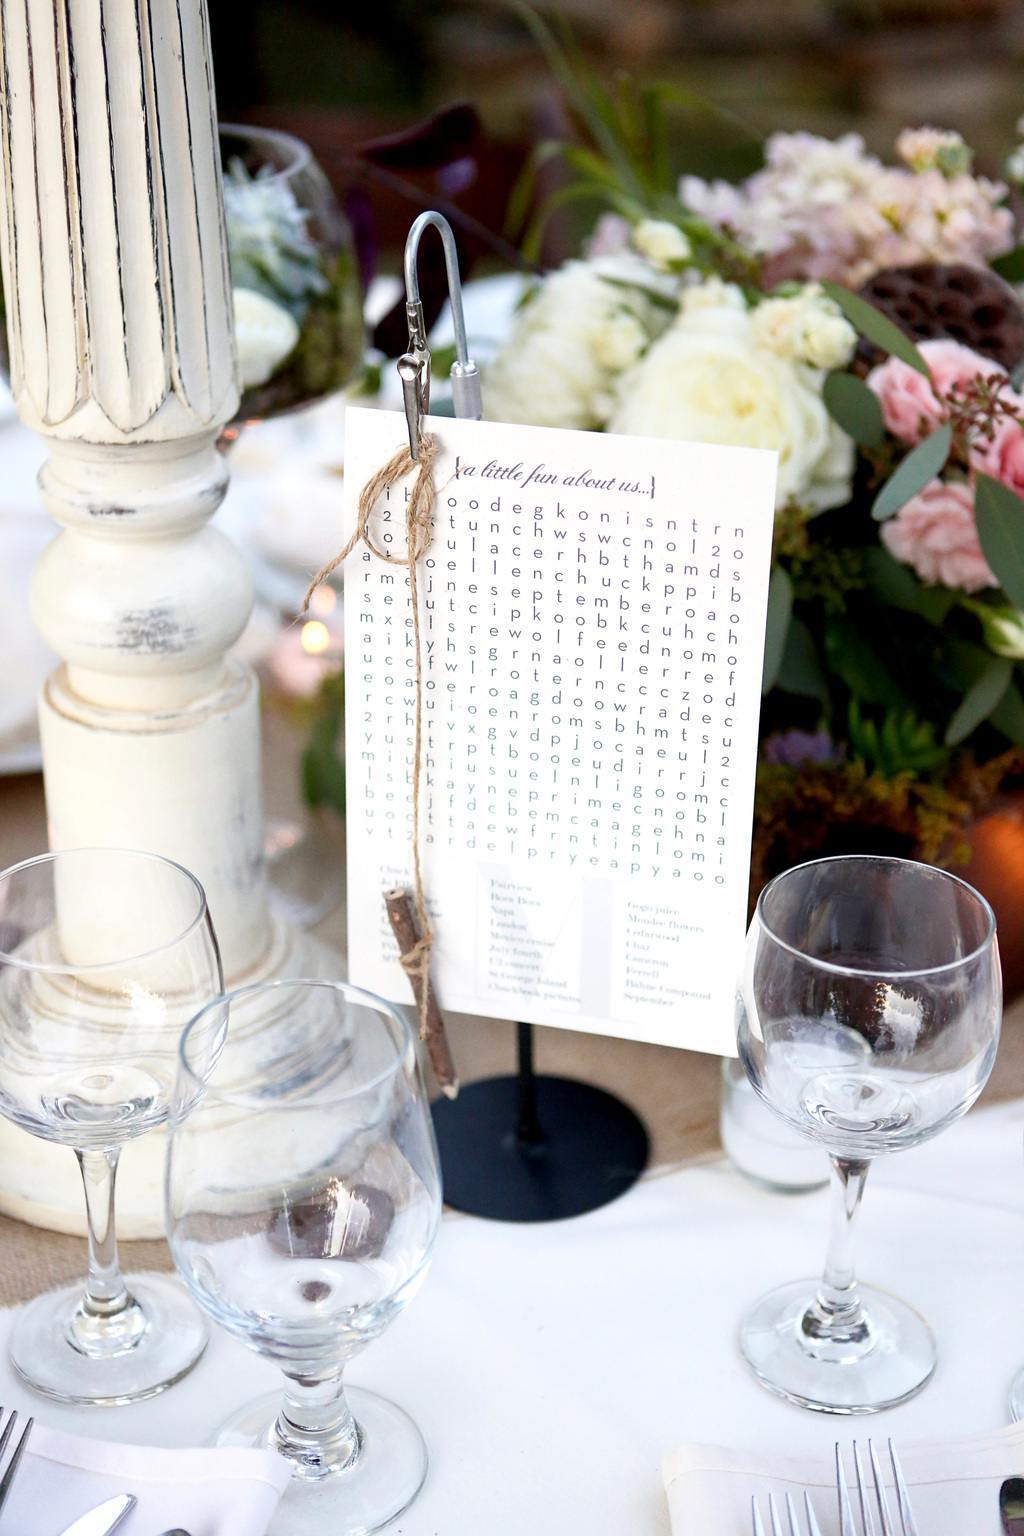 Wedding-crossword-puzzle-at-the-reception.full